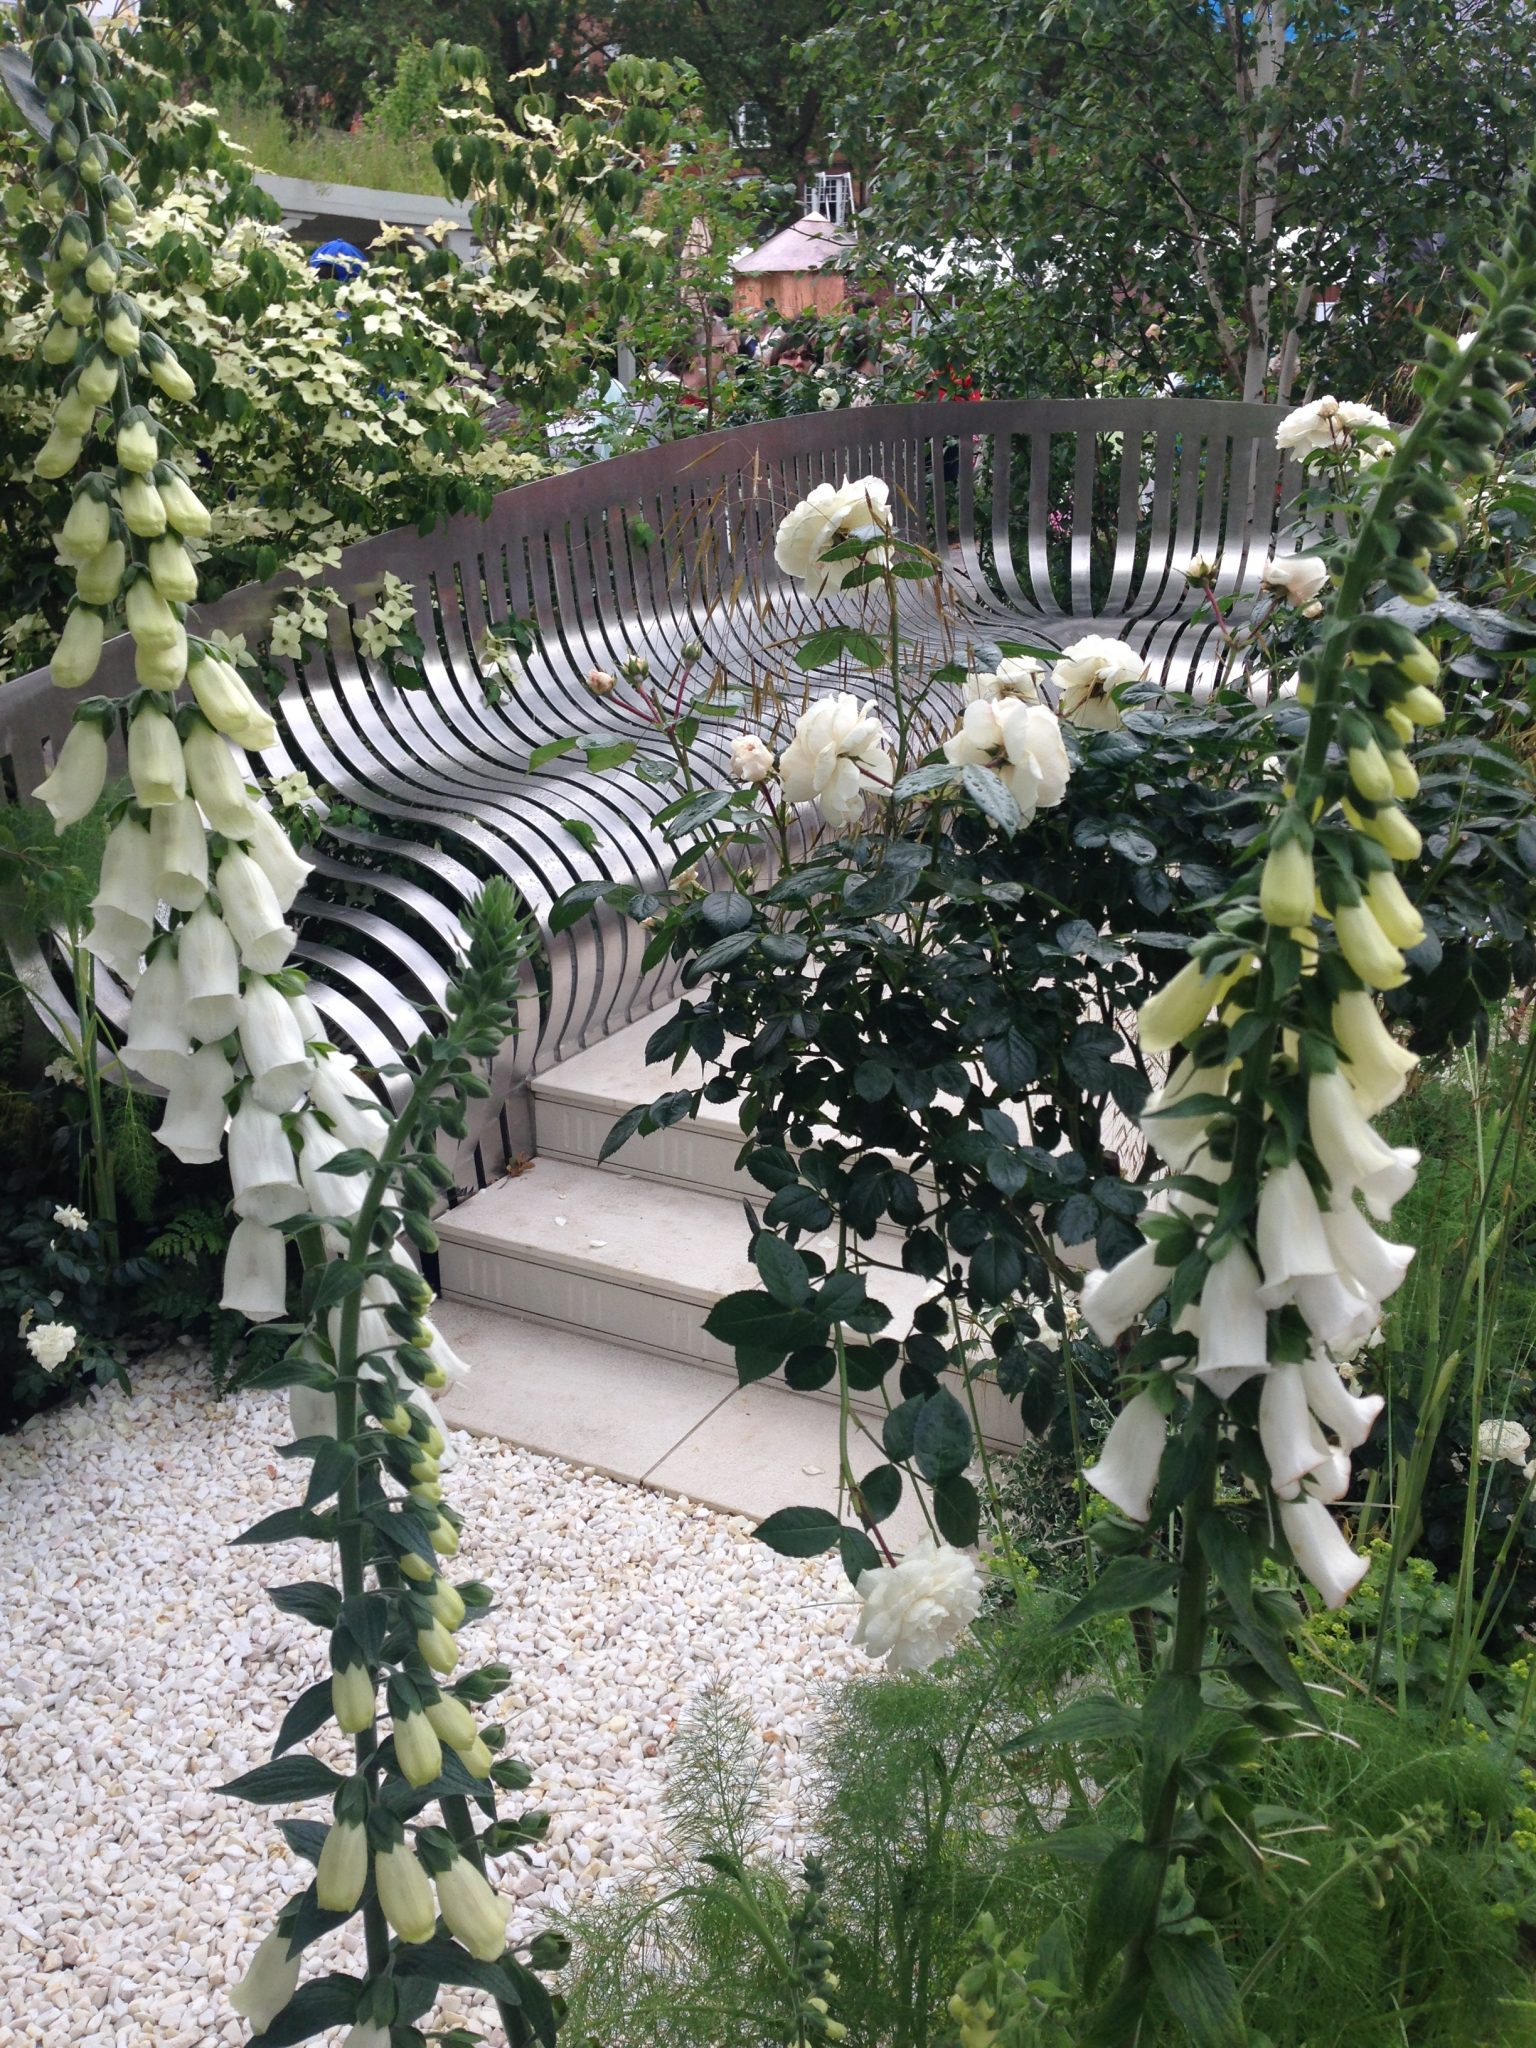 Jo Thompson's London Square Garden at Chelsea 2014 was the first to capture my imagination with its strictly white pallet